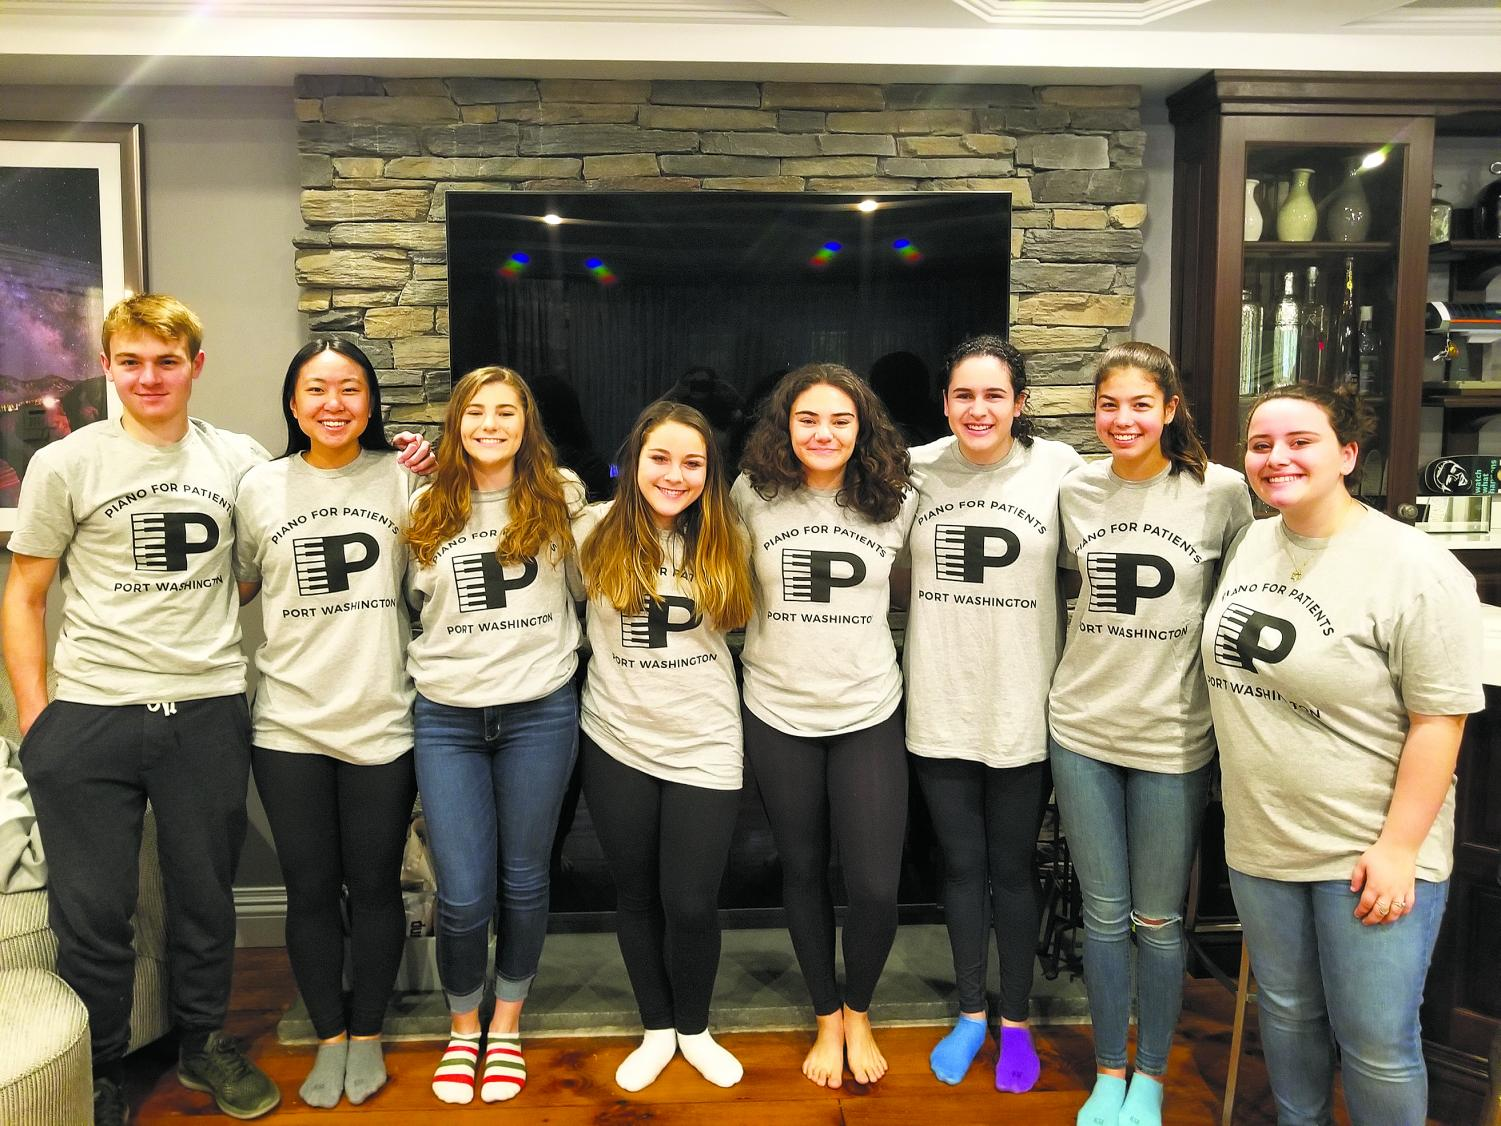 The Port Washington Chapter of Piano for Patients members AJ Siciliano, Sherry Shi, Valentina Scotto, Sarabeth Schiff, Emma Klein, Emma Goldman, Sofia Kuusisto, and Eden Franco. The group performed their instruments once a month for the Sands Point Center for Health and Rehabilitation.